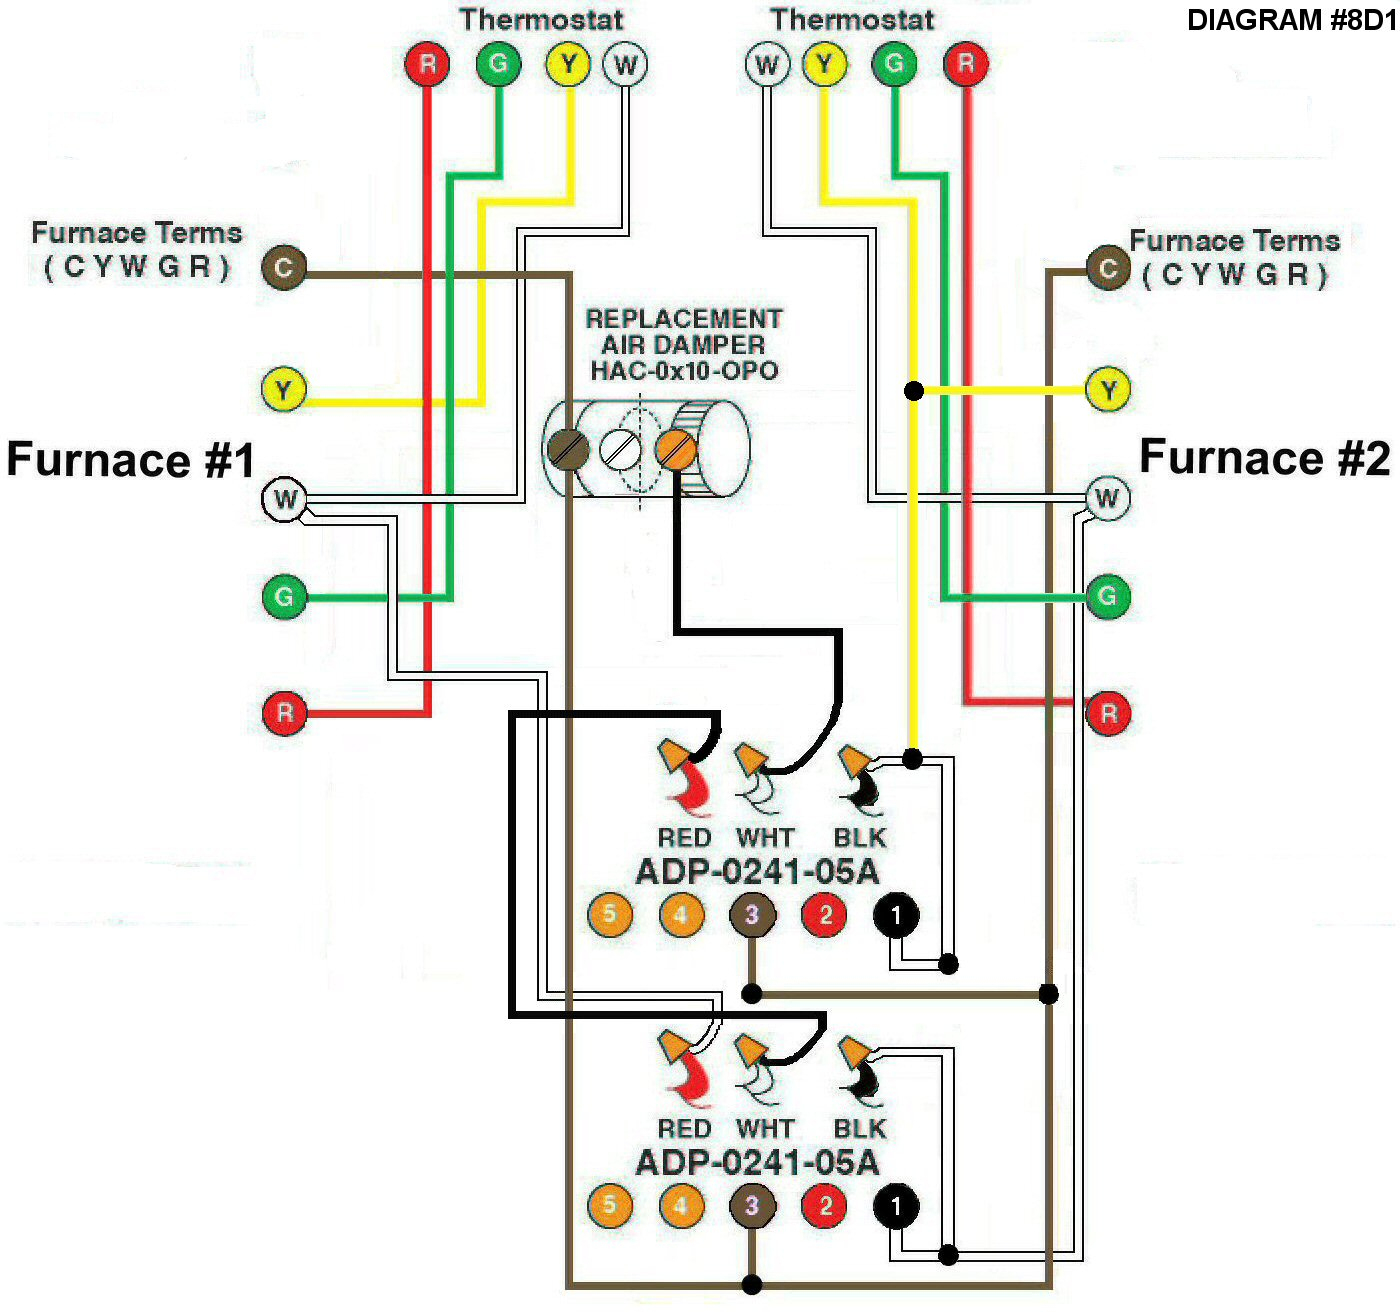 Carrier Bus Air Conditioning Wiring Diagram | Wiring Diagram - Carrier Air Conditioner Wiring Diagram